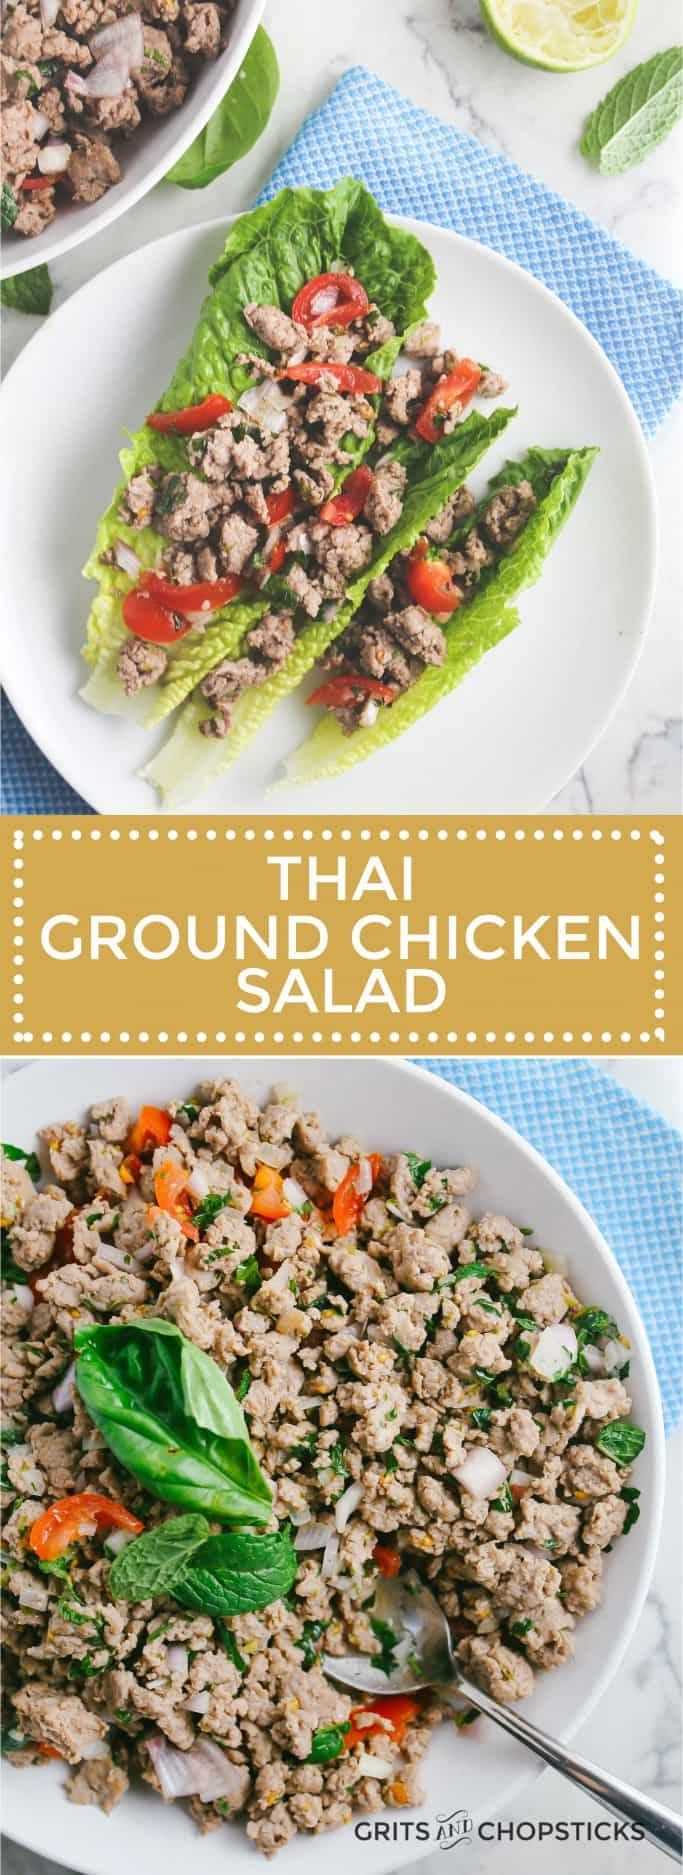 Thai ground chicken salad served on top of crispy lettuce - a perfect Paleo/Whole30 meal!